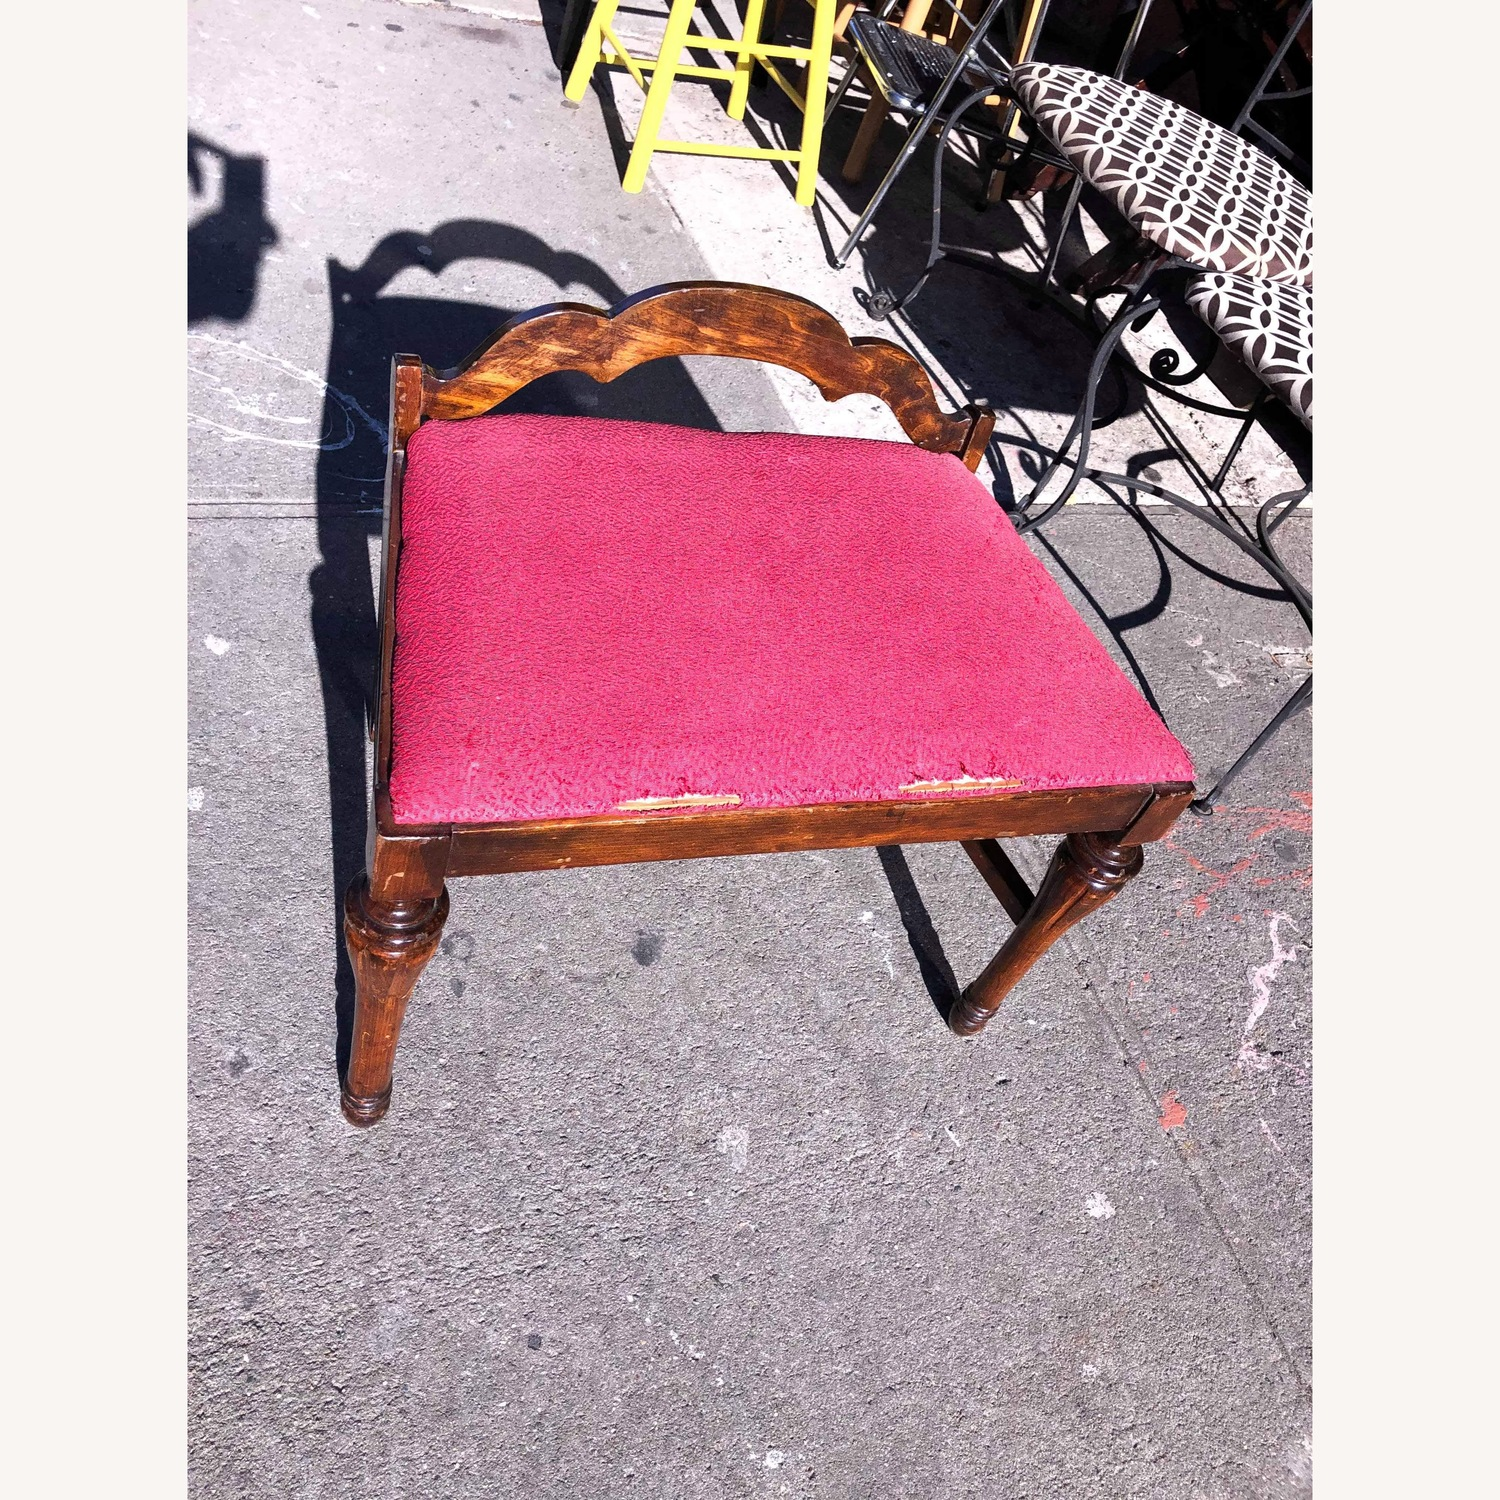 Antique 1900s Boudoir Bedroom Chair